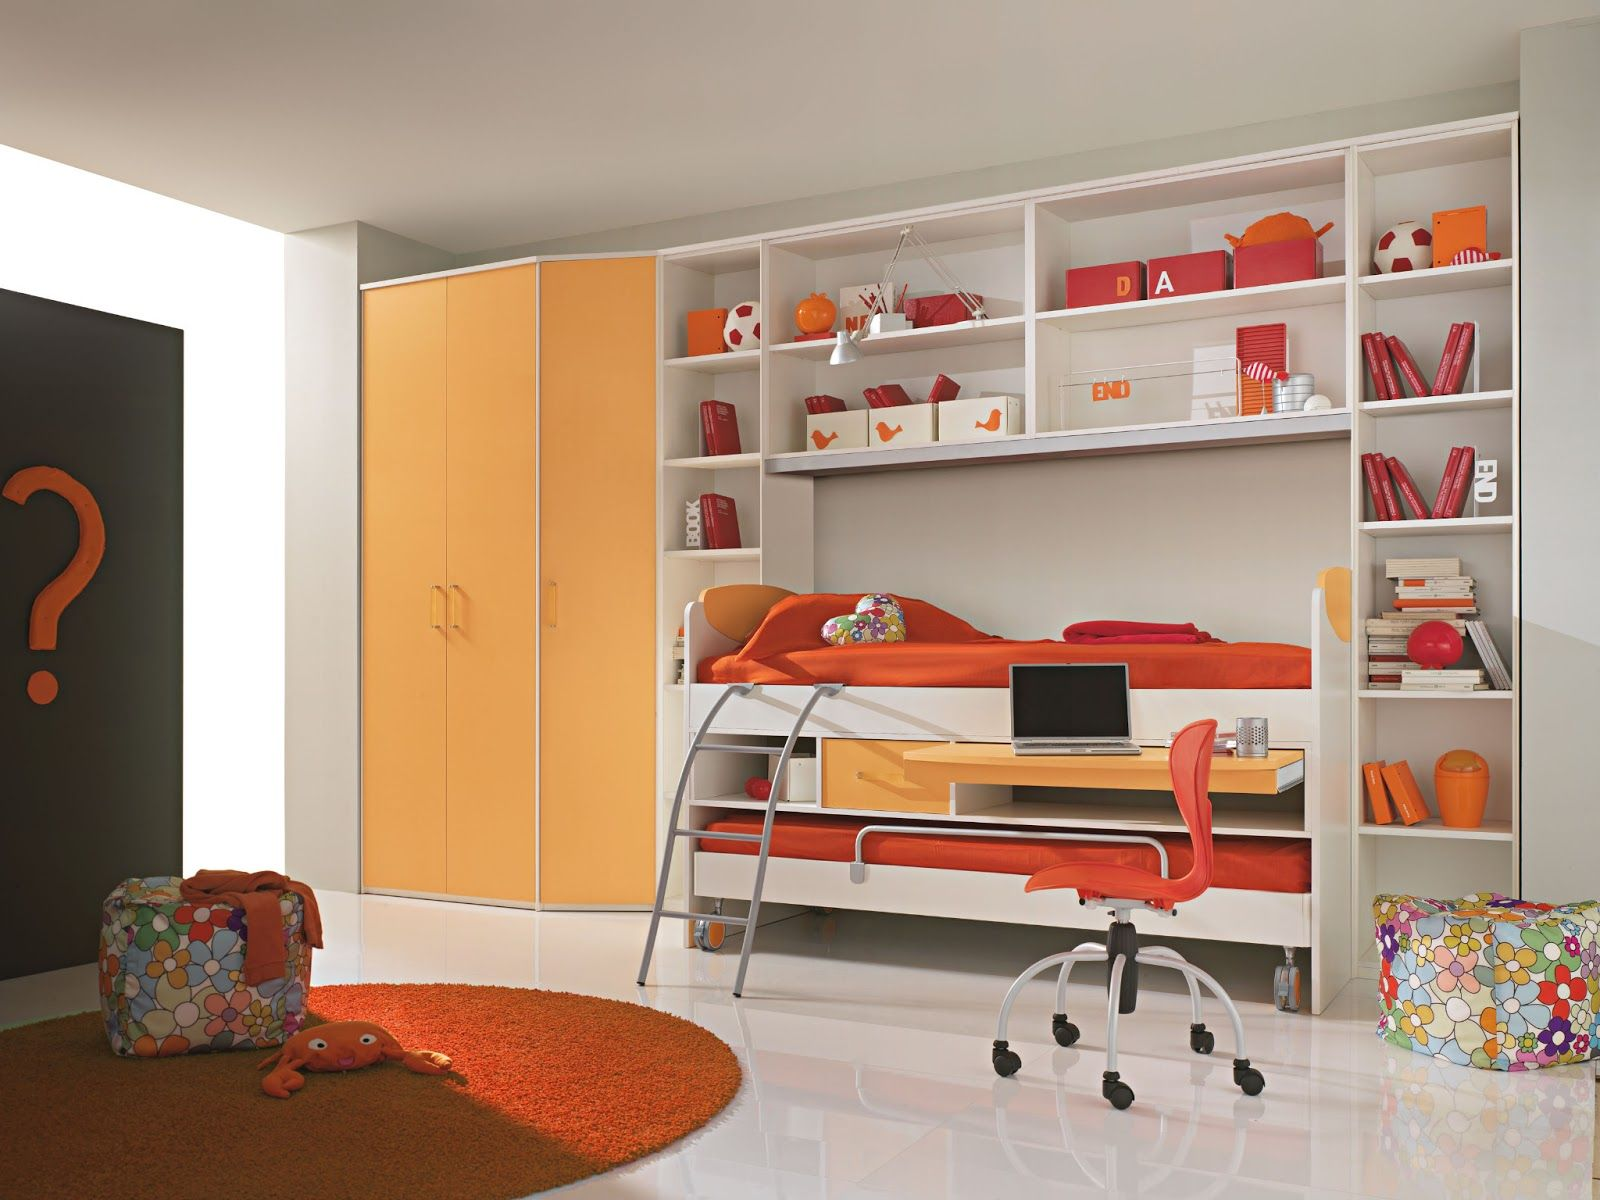 Most beautiful kids bedrooms - We Have Put Together The Most Beautiful Kids Bedroom Furniture In This Gallery Here You